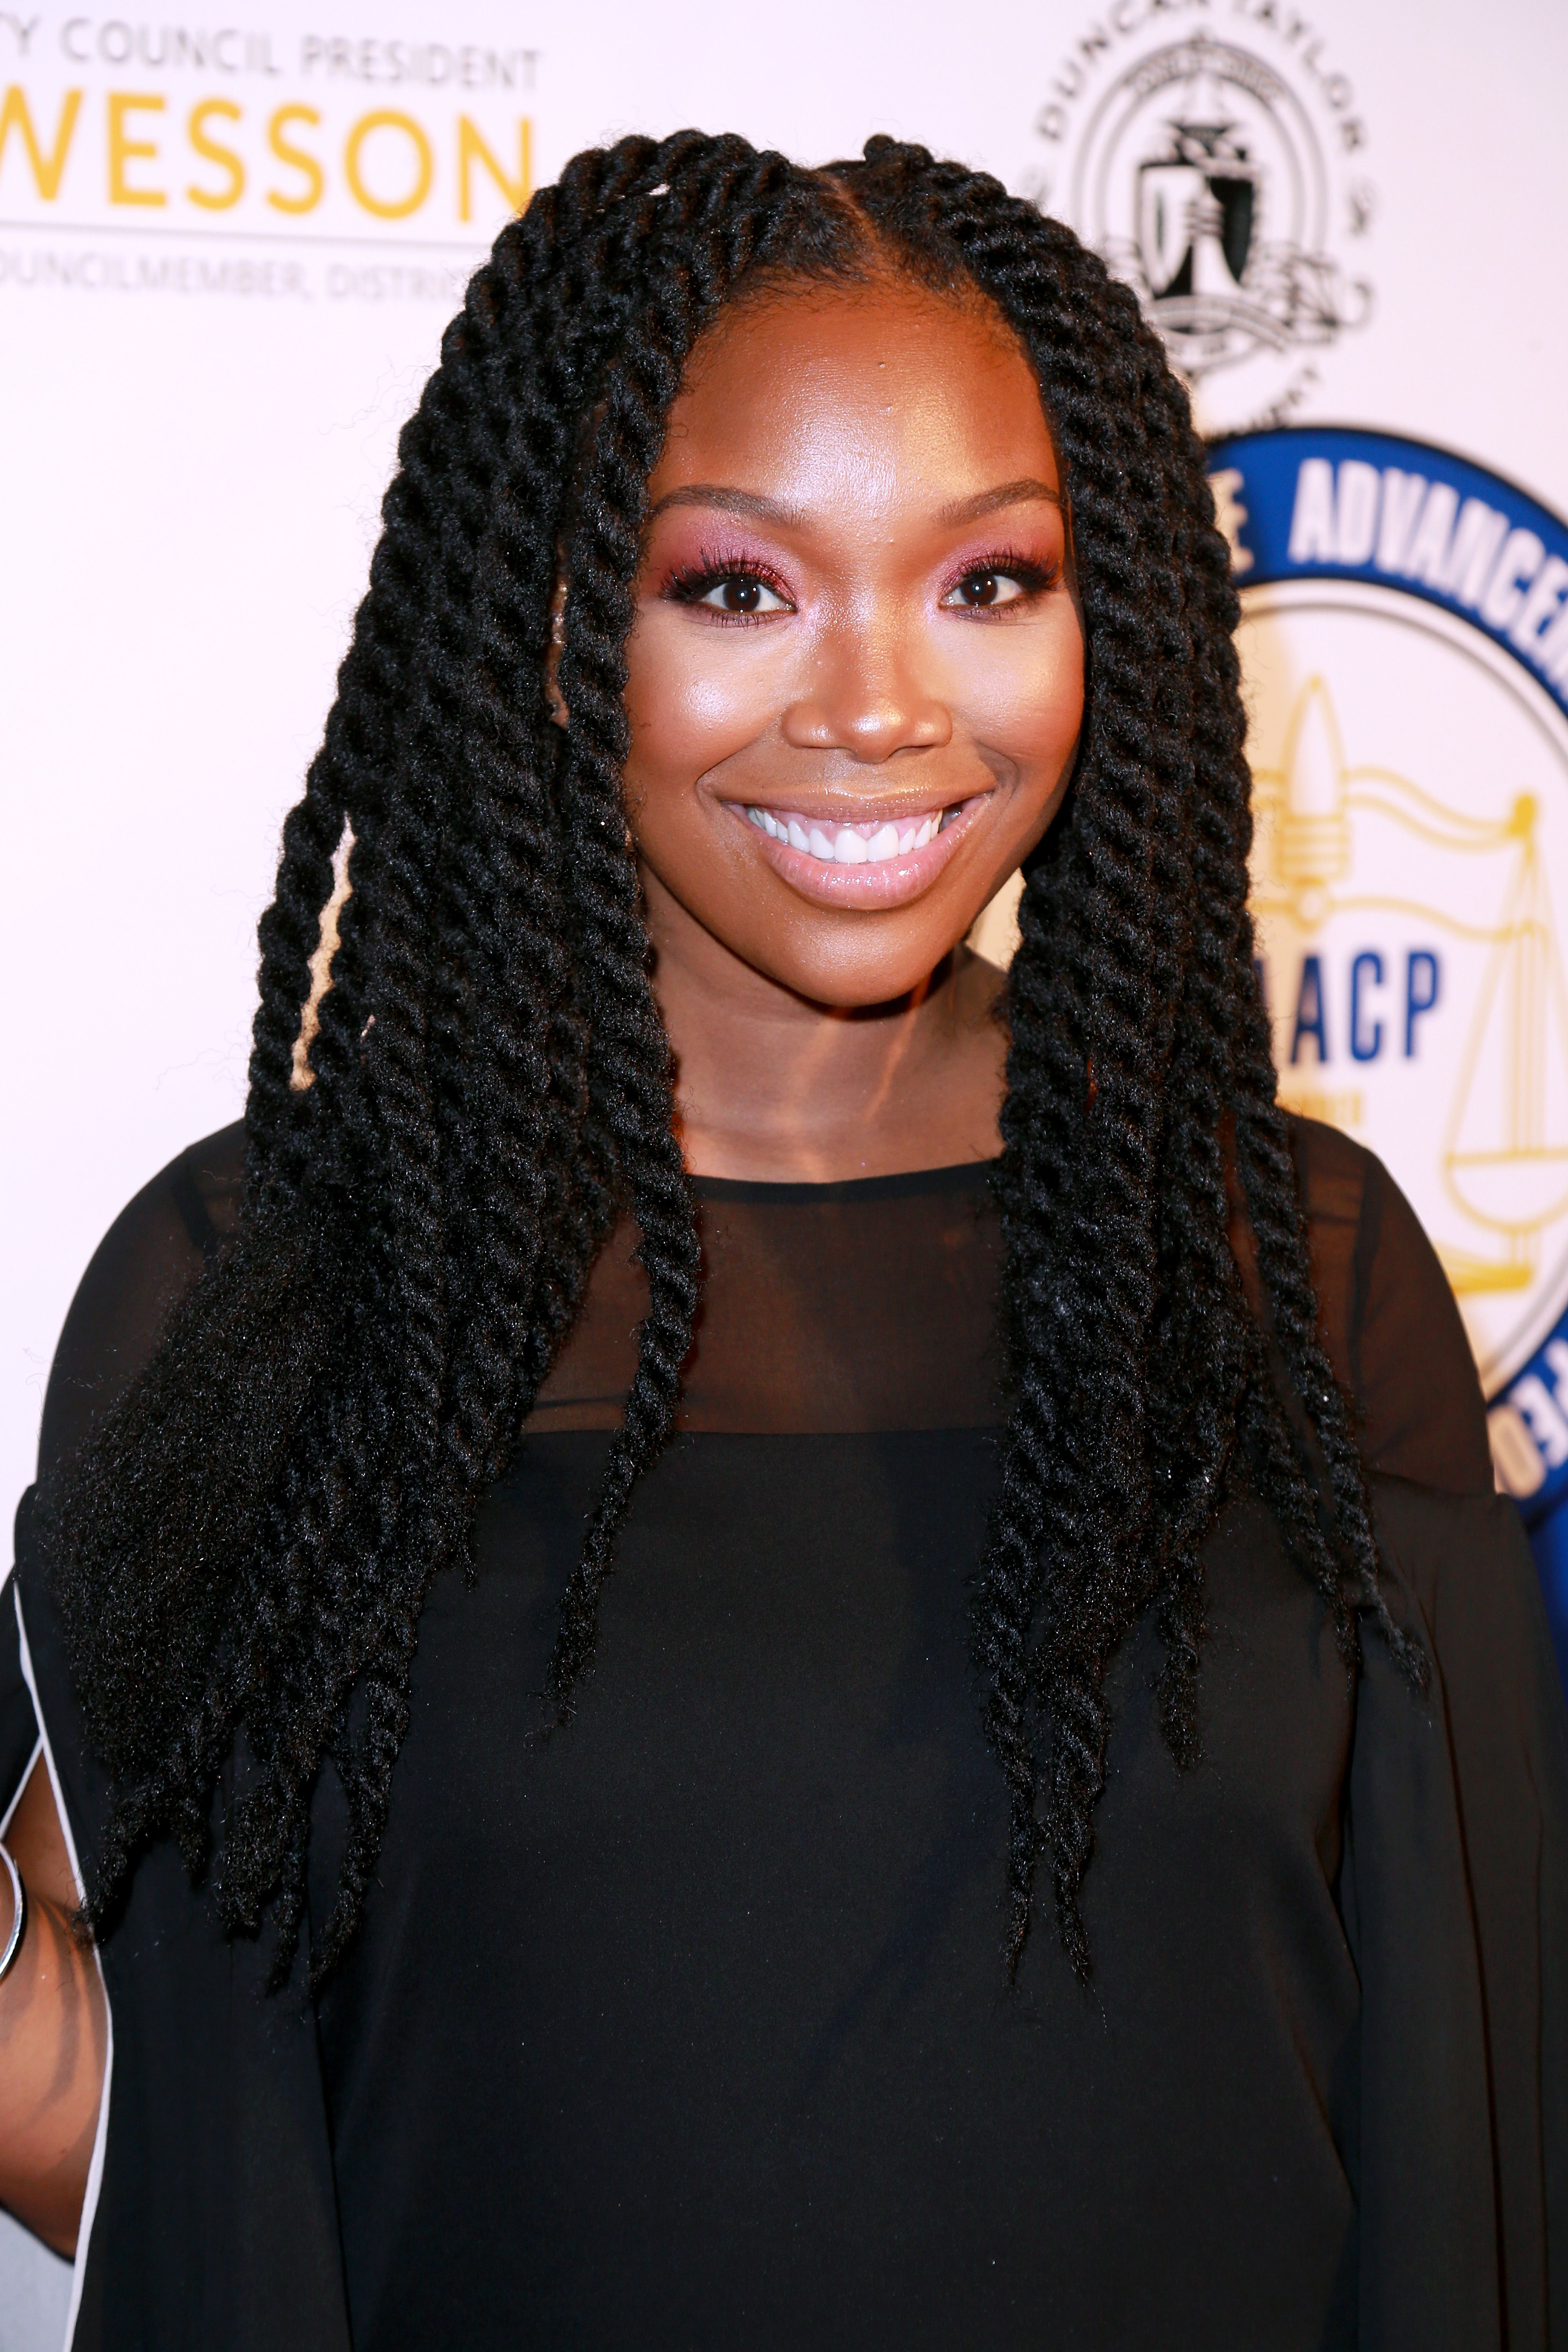 Brandy Norwood during the 27th Annual NAACP Theatre Awards at Millennium Biltmore Hotel on February 26, 2018 in Los Angeles, California. | Source: Getty Images